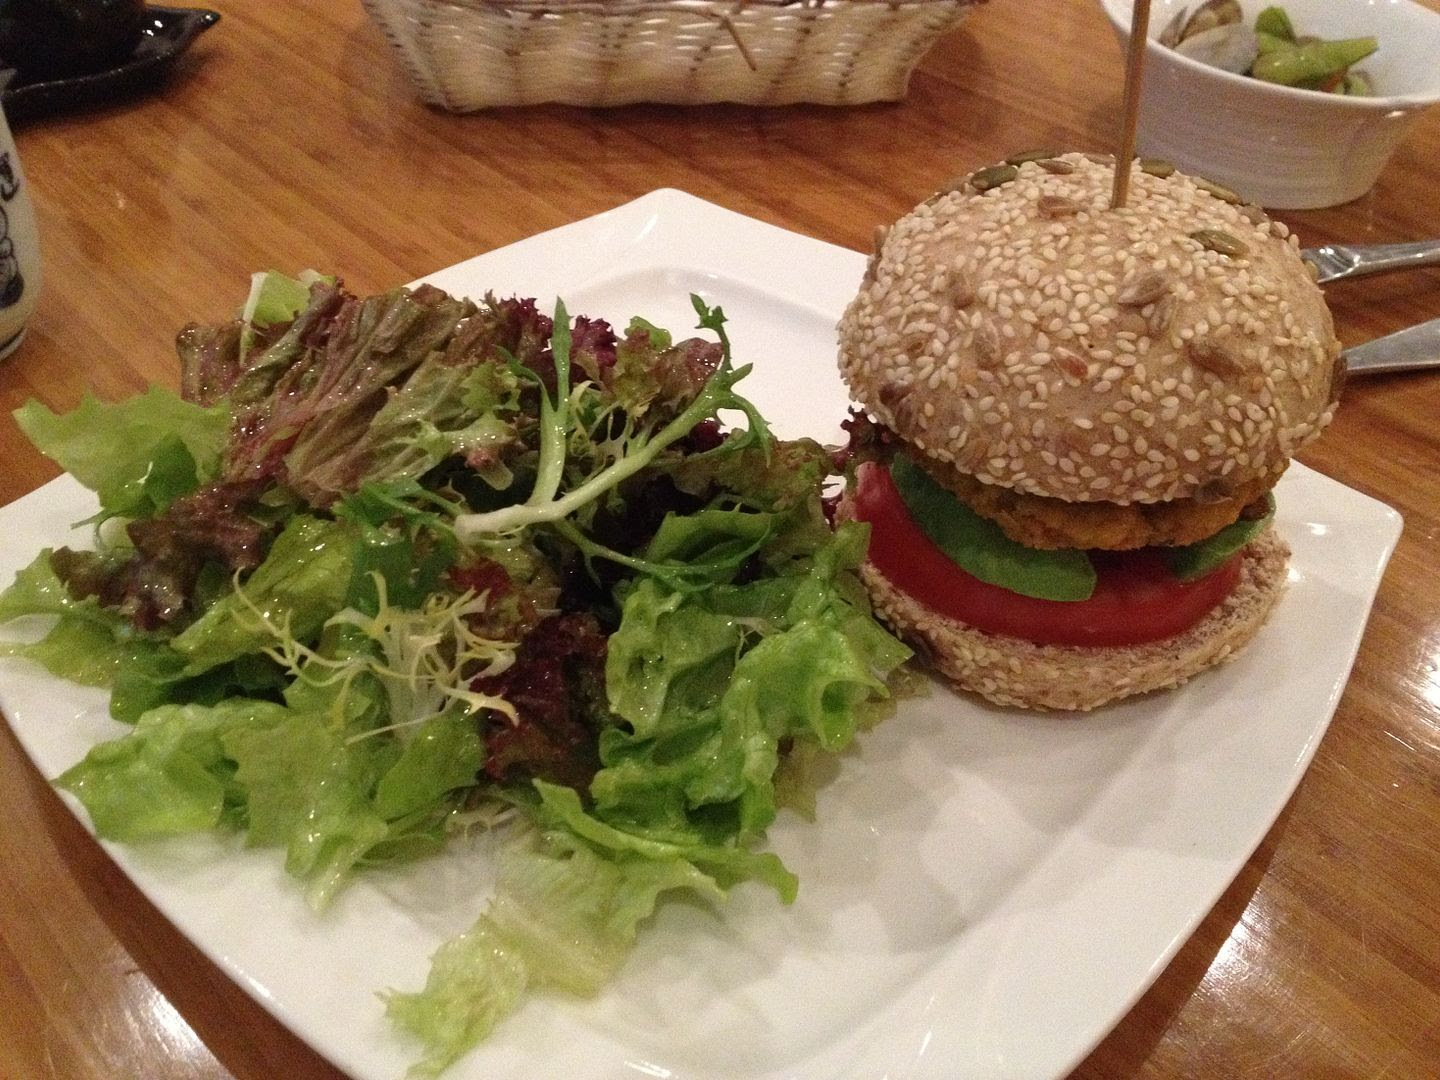 Best Veggie Burger photo 2014-01-08203404_zps8961d38a.jpg